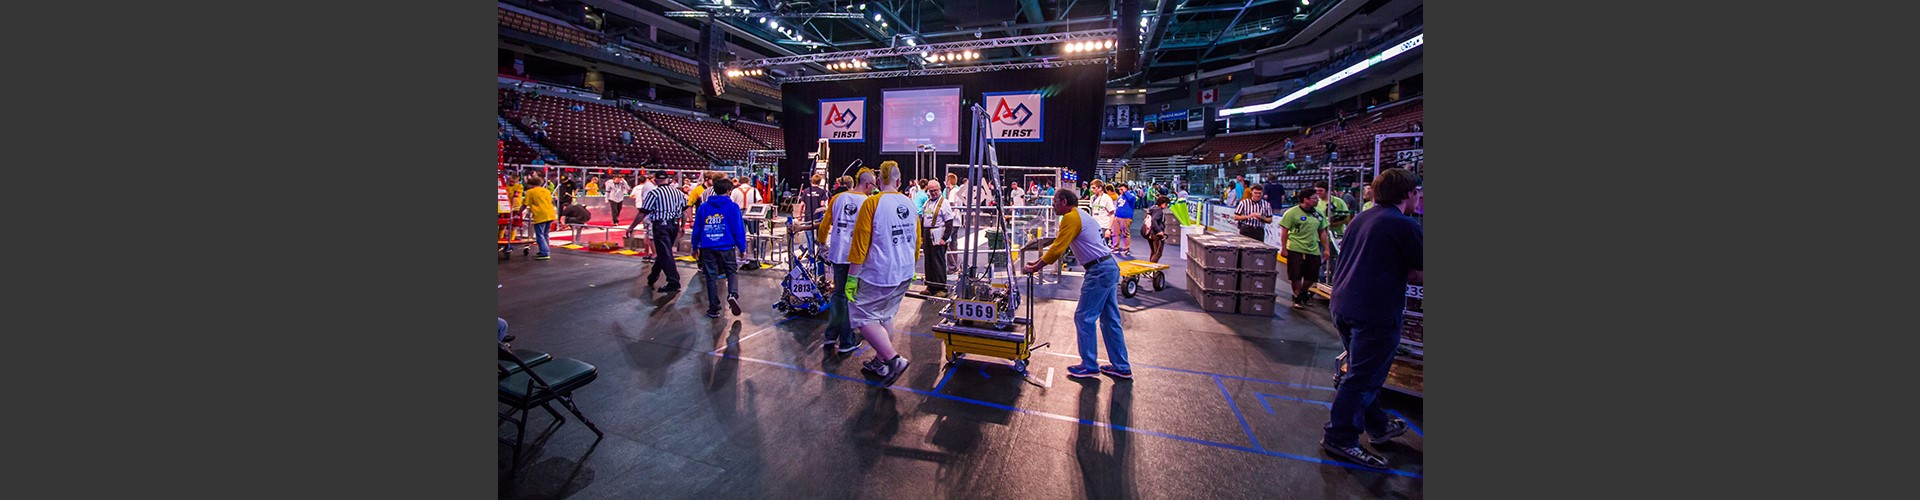 Haywire Robotics team at a competition.